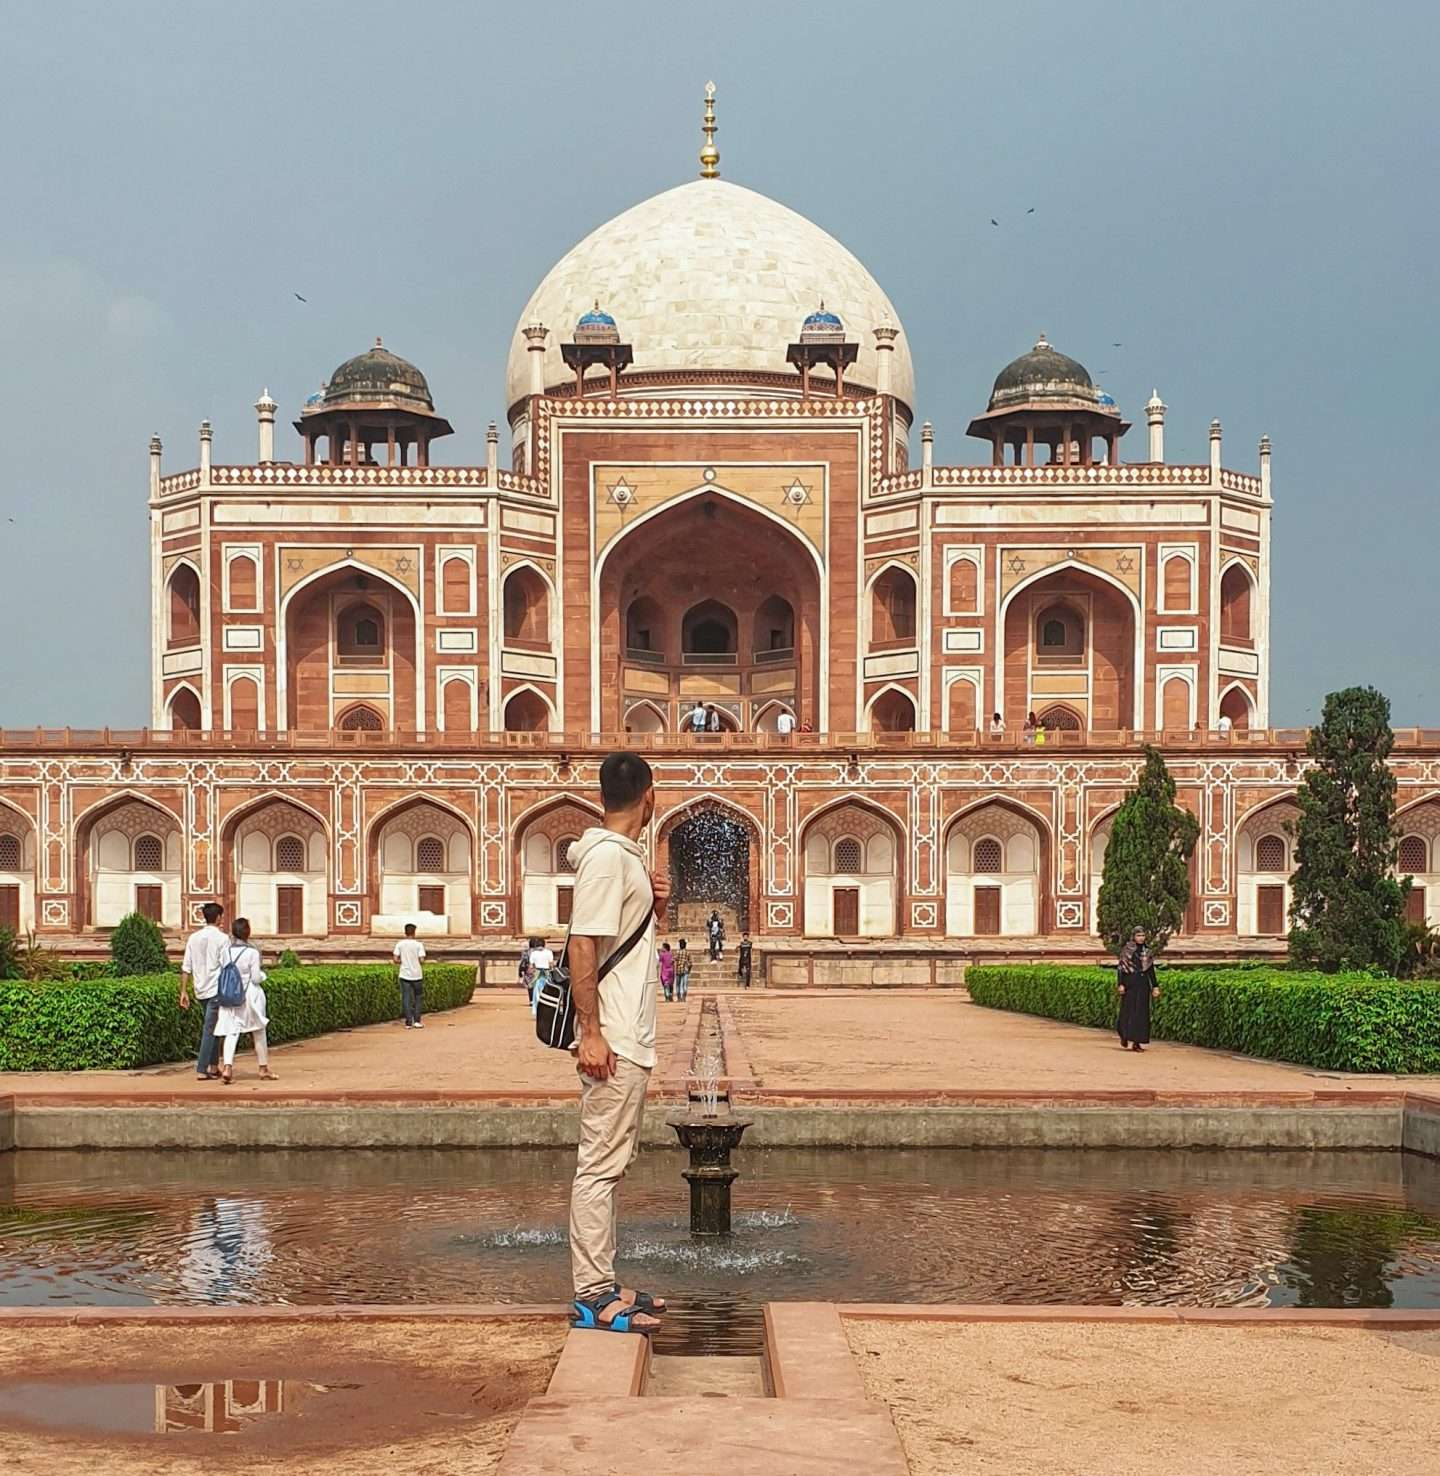 Things To See in Delhi, India – Travel Guide